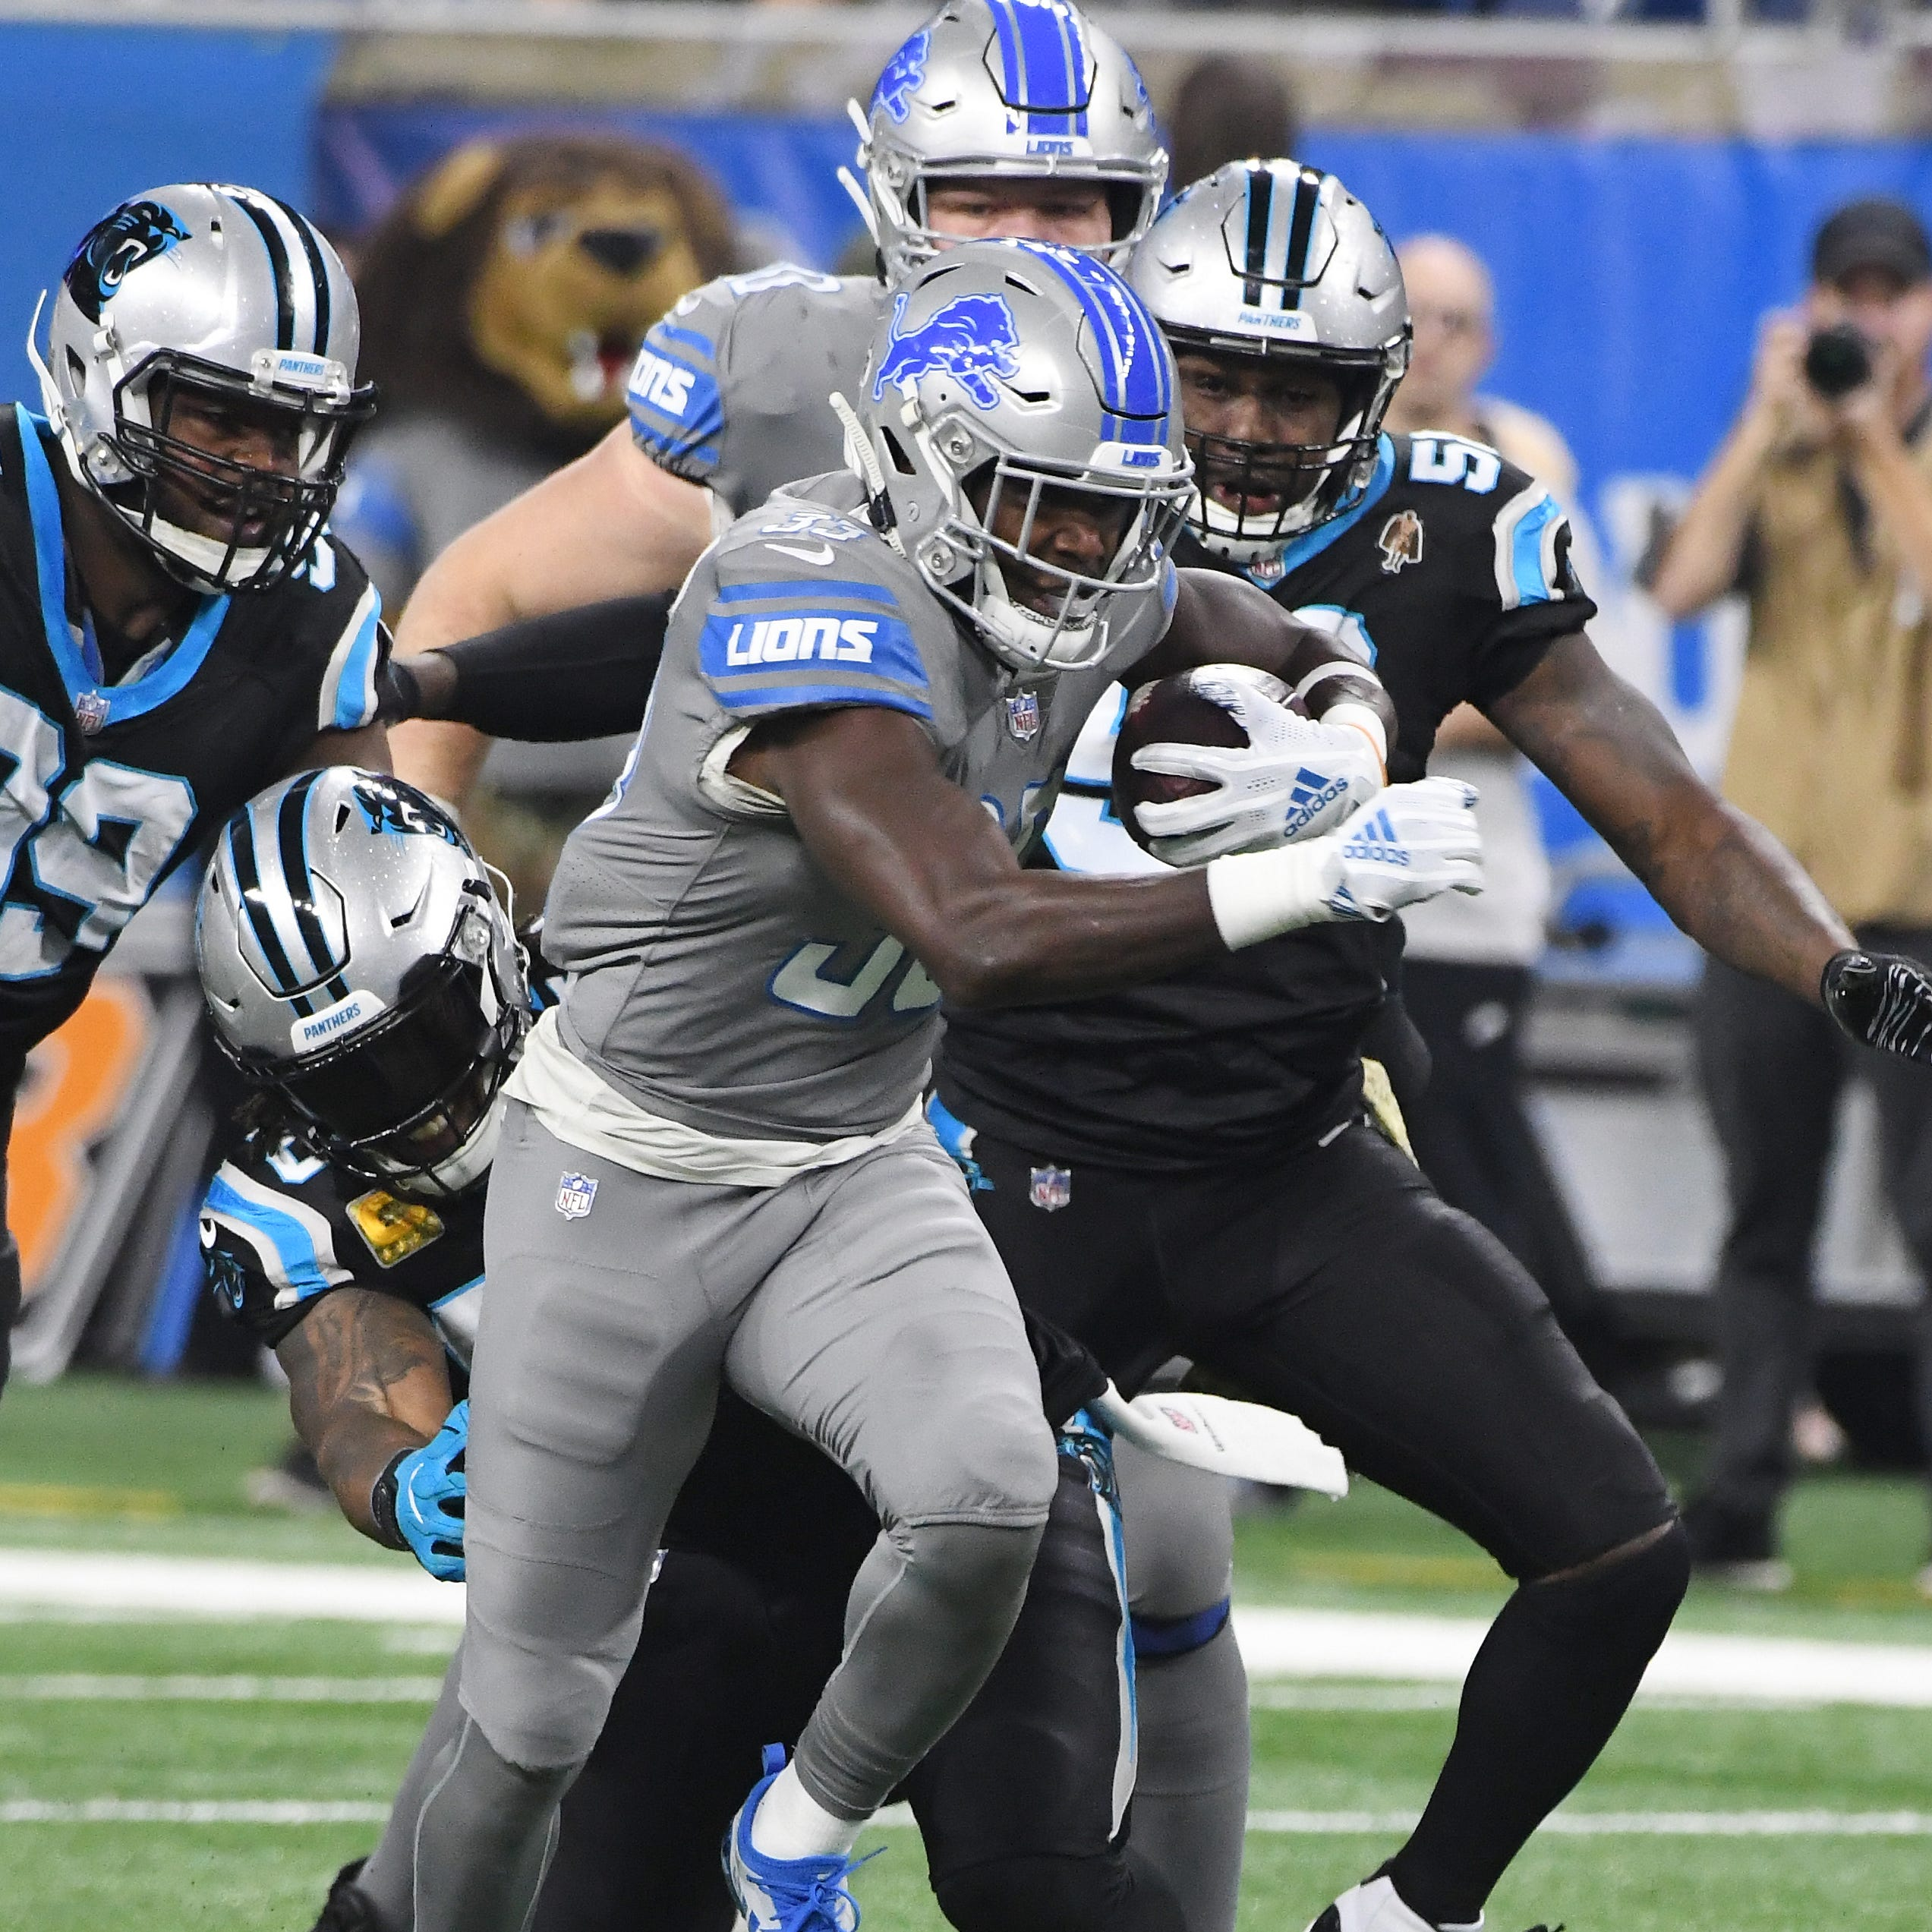 Lions might lean on Zach Zenner if Kerryon Johnson can't play